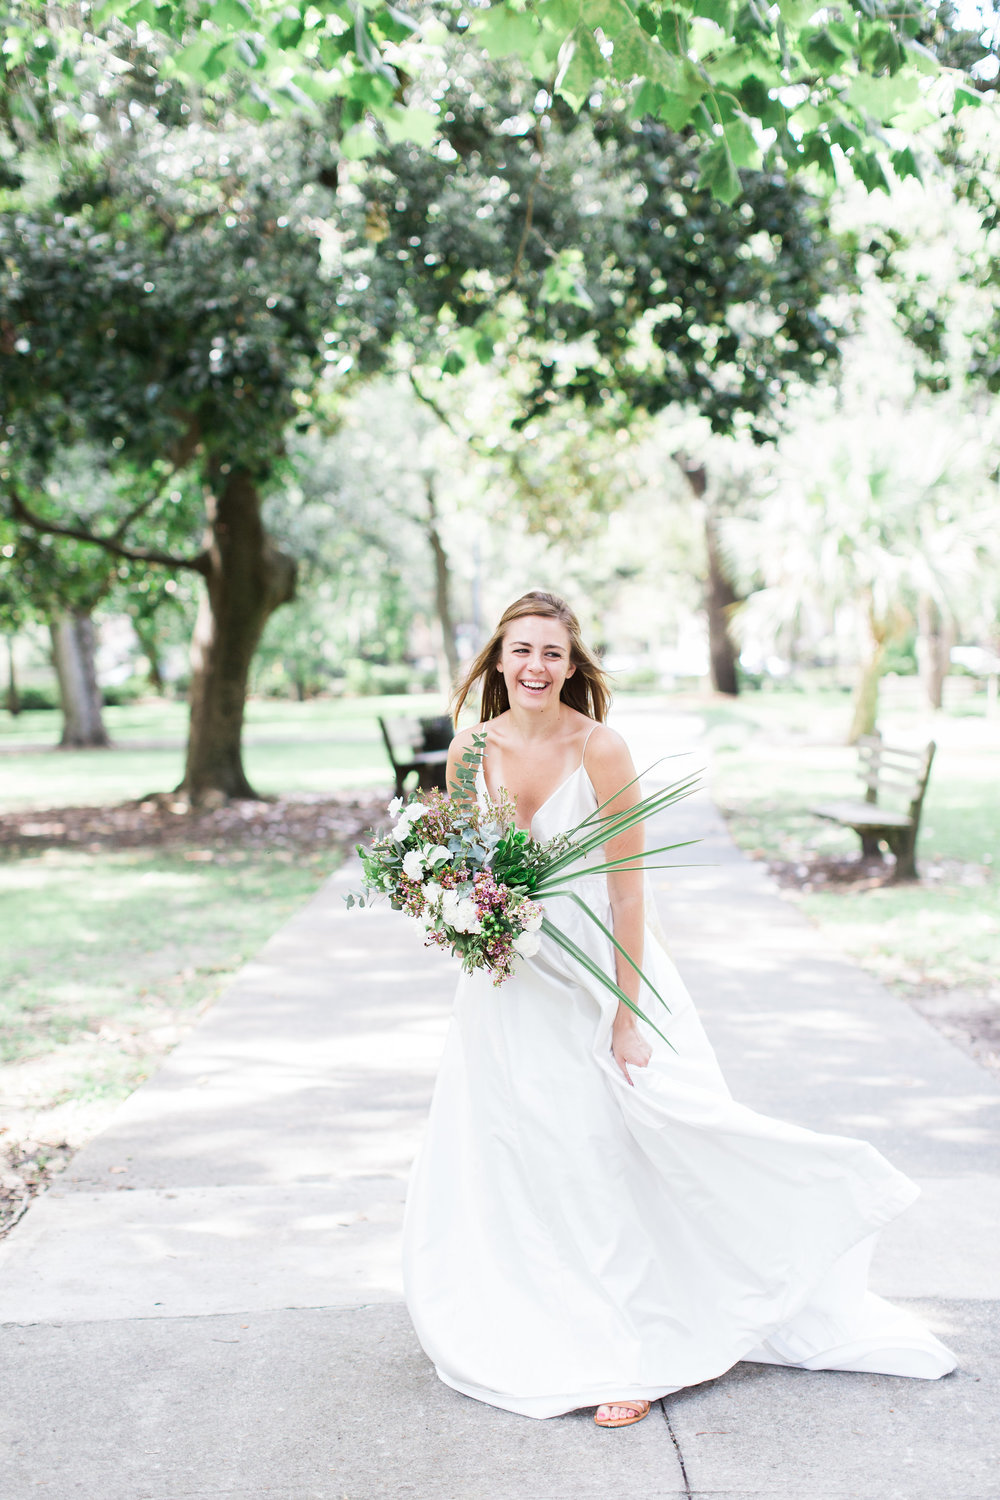 apt-b-photography-kate-mcdonald-mccants-forsyth-park-elopement-forsyth-fountain-rainy-wedding-day-savannah-florist-ivory-and-beau-bridal-boutique-savannah-wedding-gowns-savannah-weddings-savannah-wedding-planner-adele-amelia-gold-veil-5.jpg